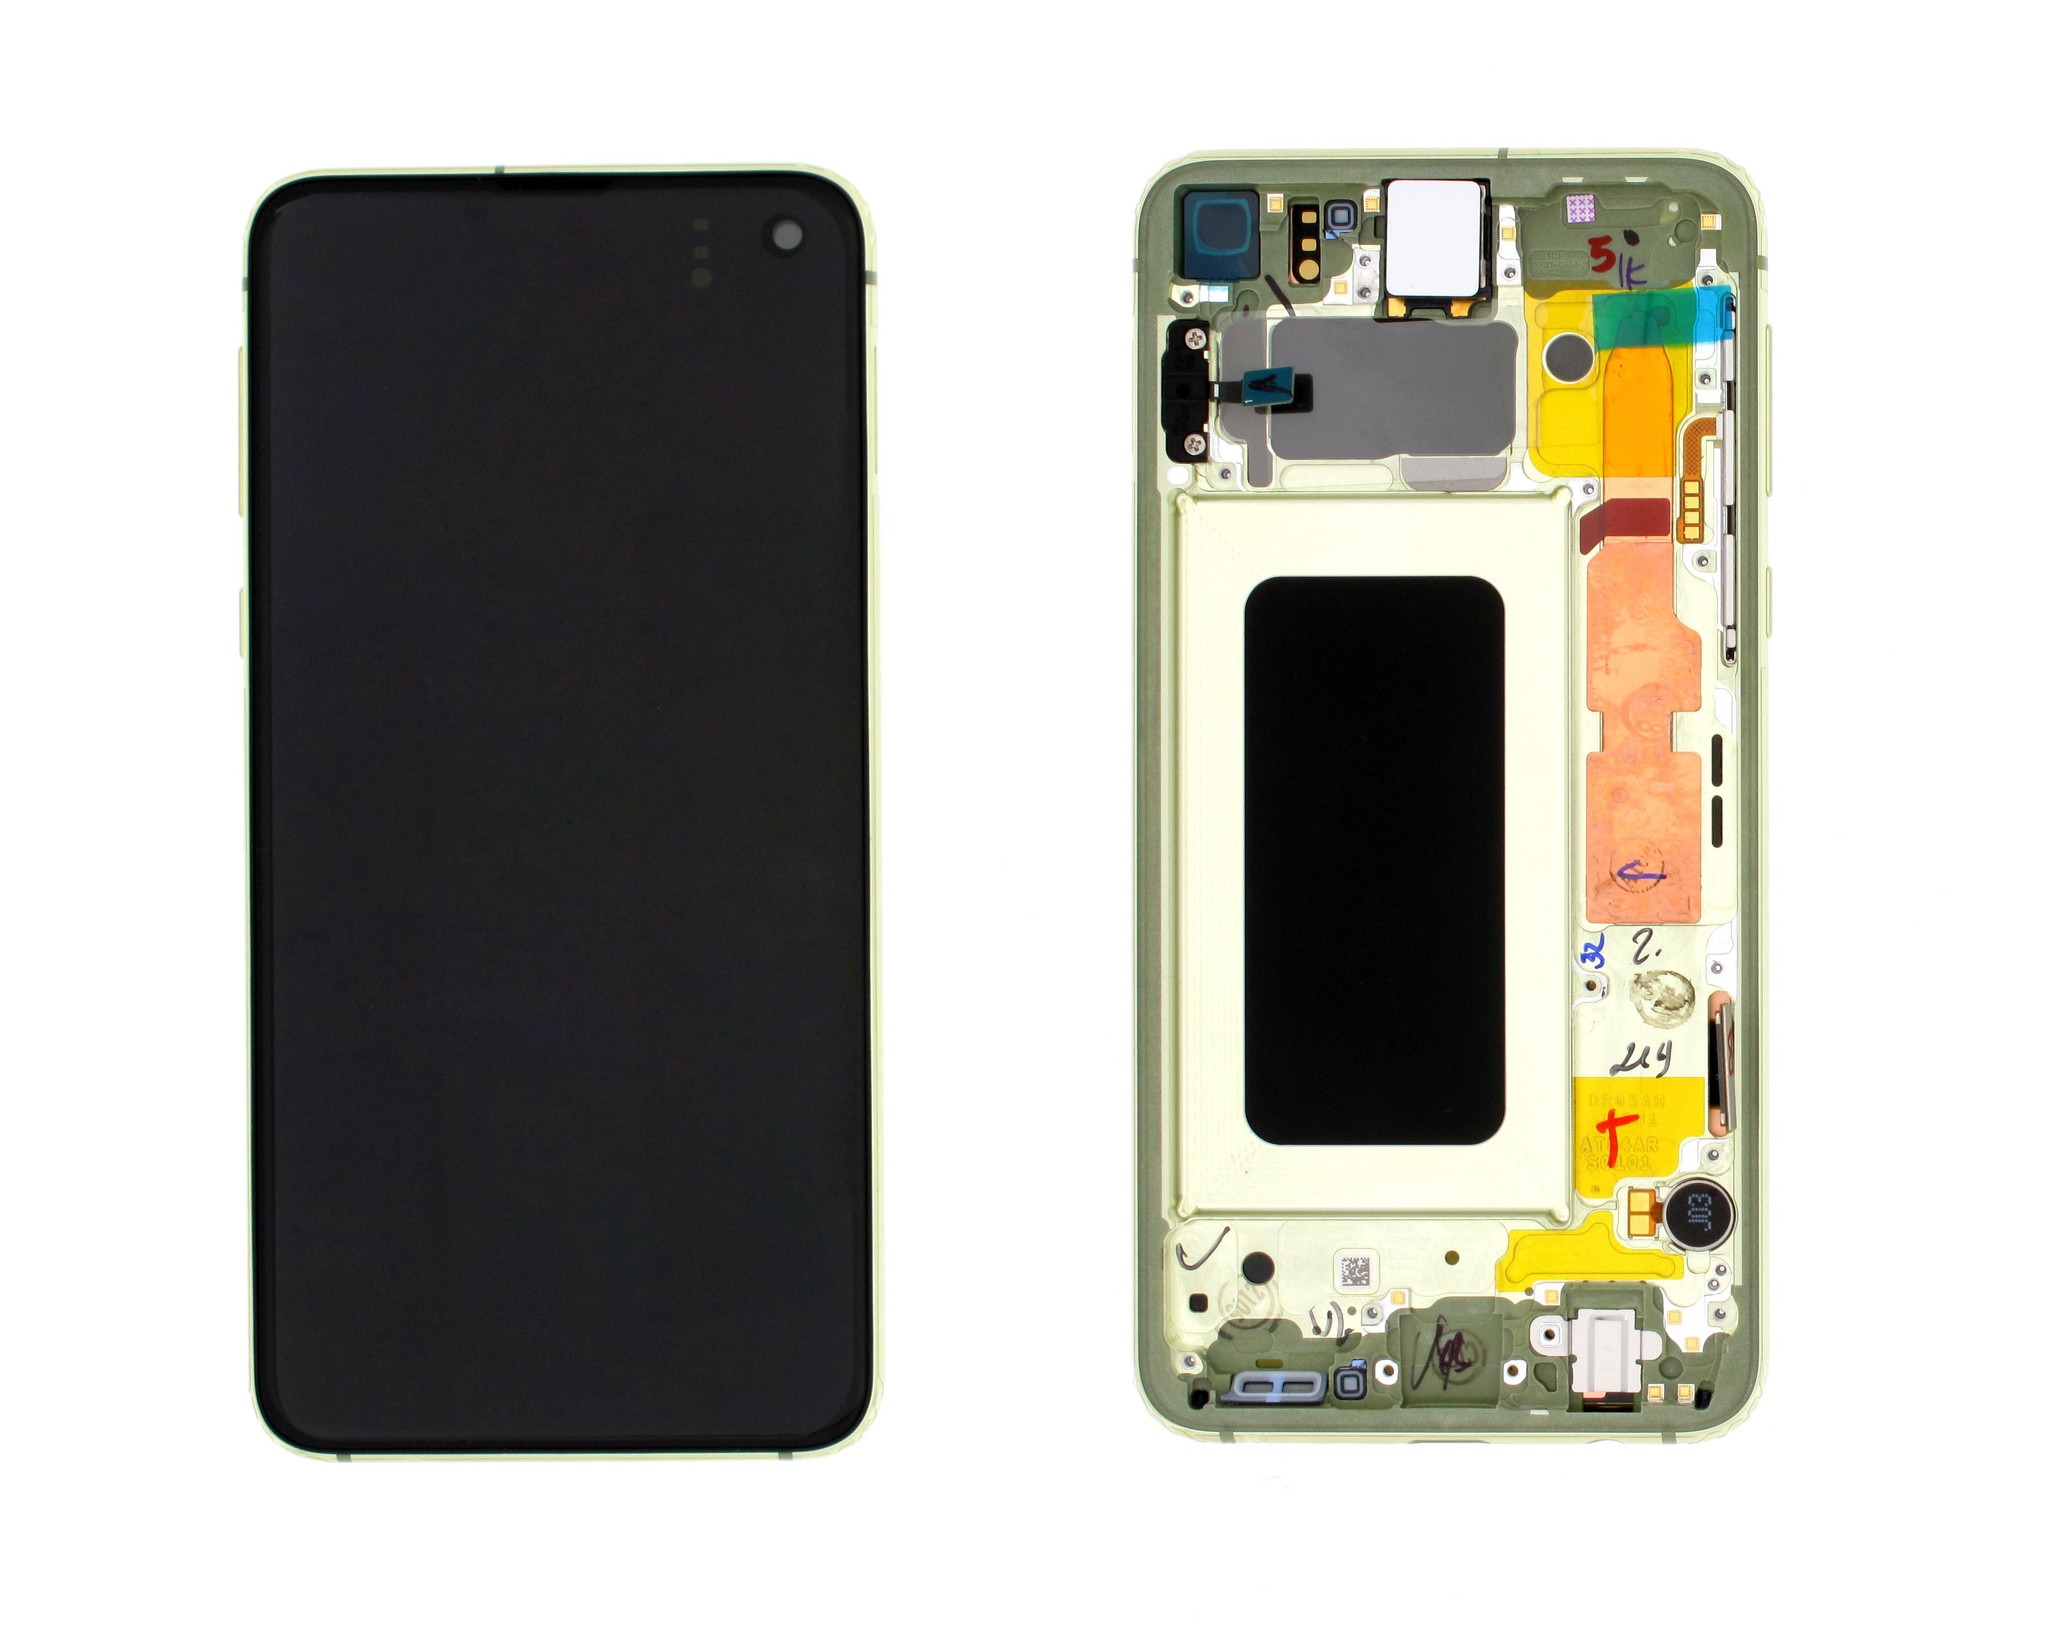 Samsung G970F Galaxy S10e LCD Display Module, Canary Yellow/Yellow, GH82-18852G